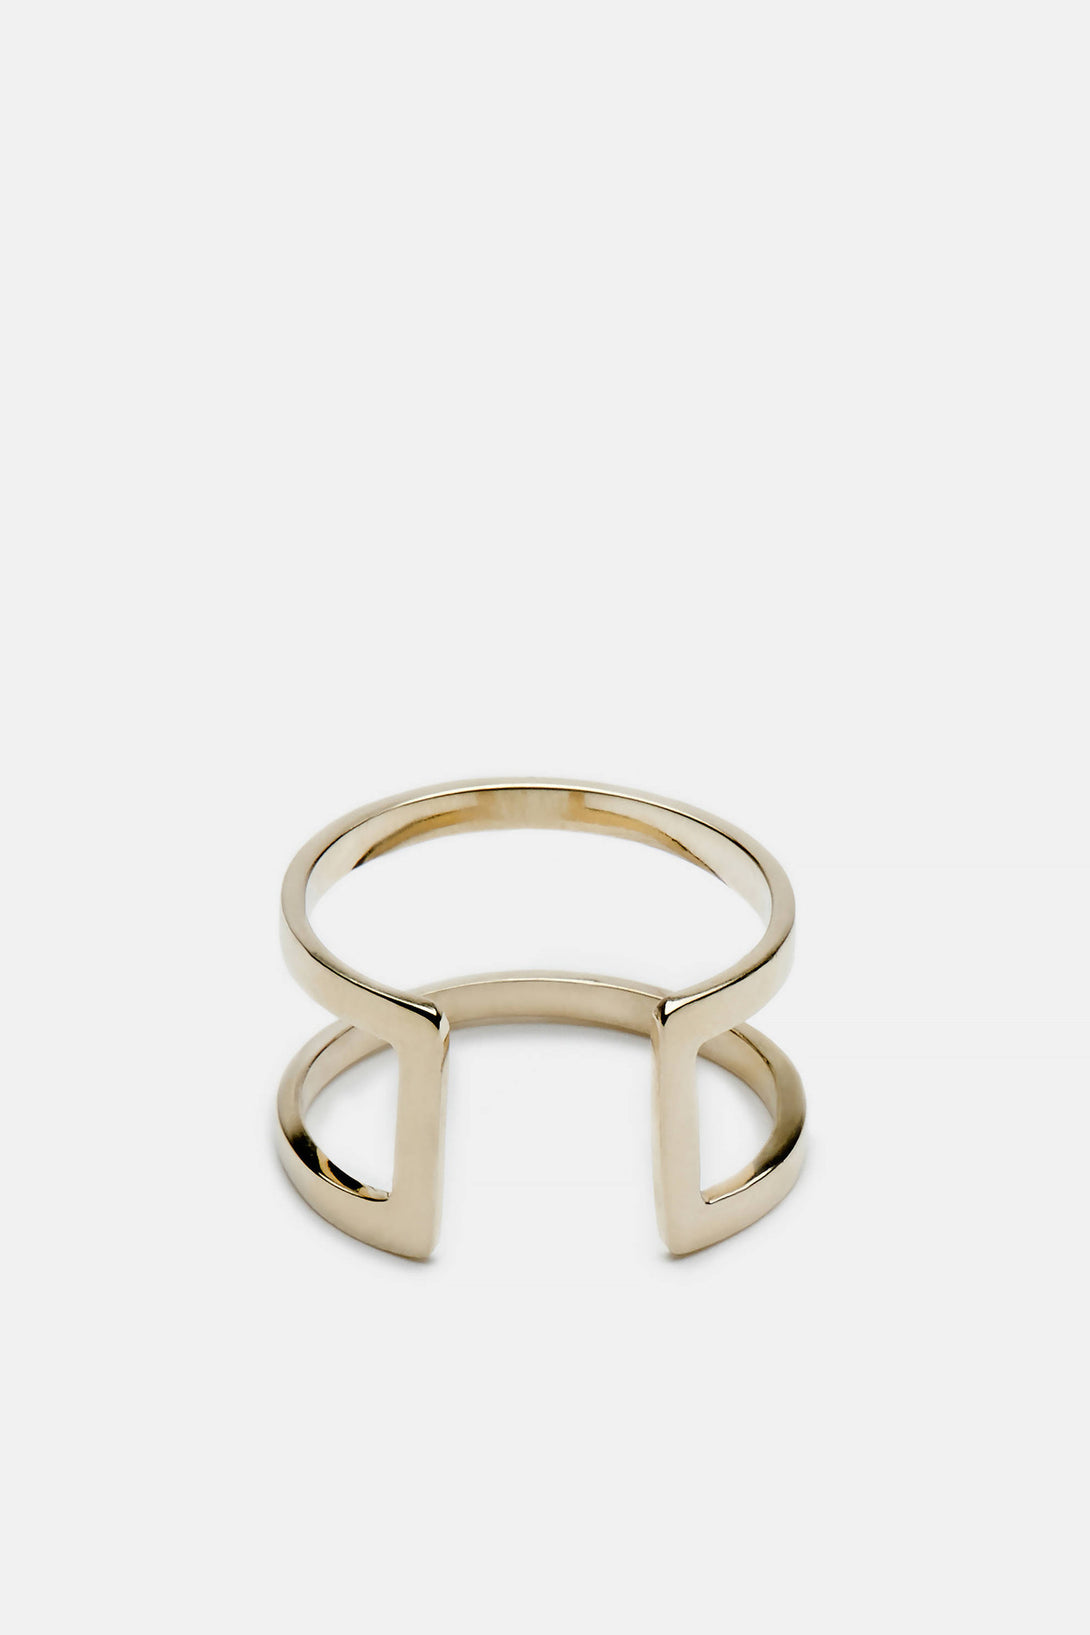 Cage Ring - 10K Yellow Gold